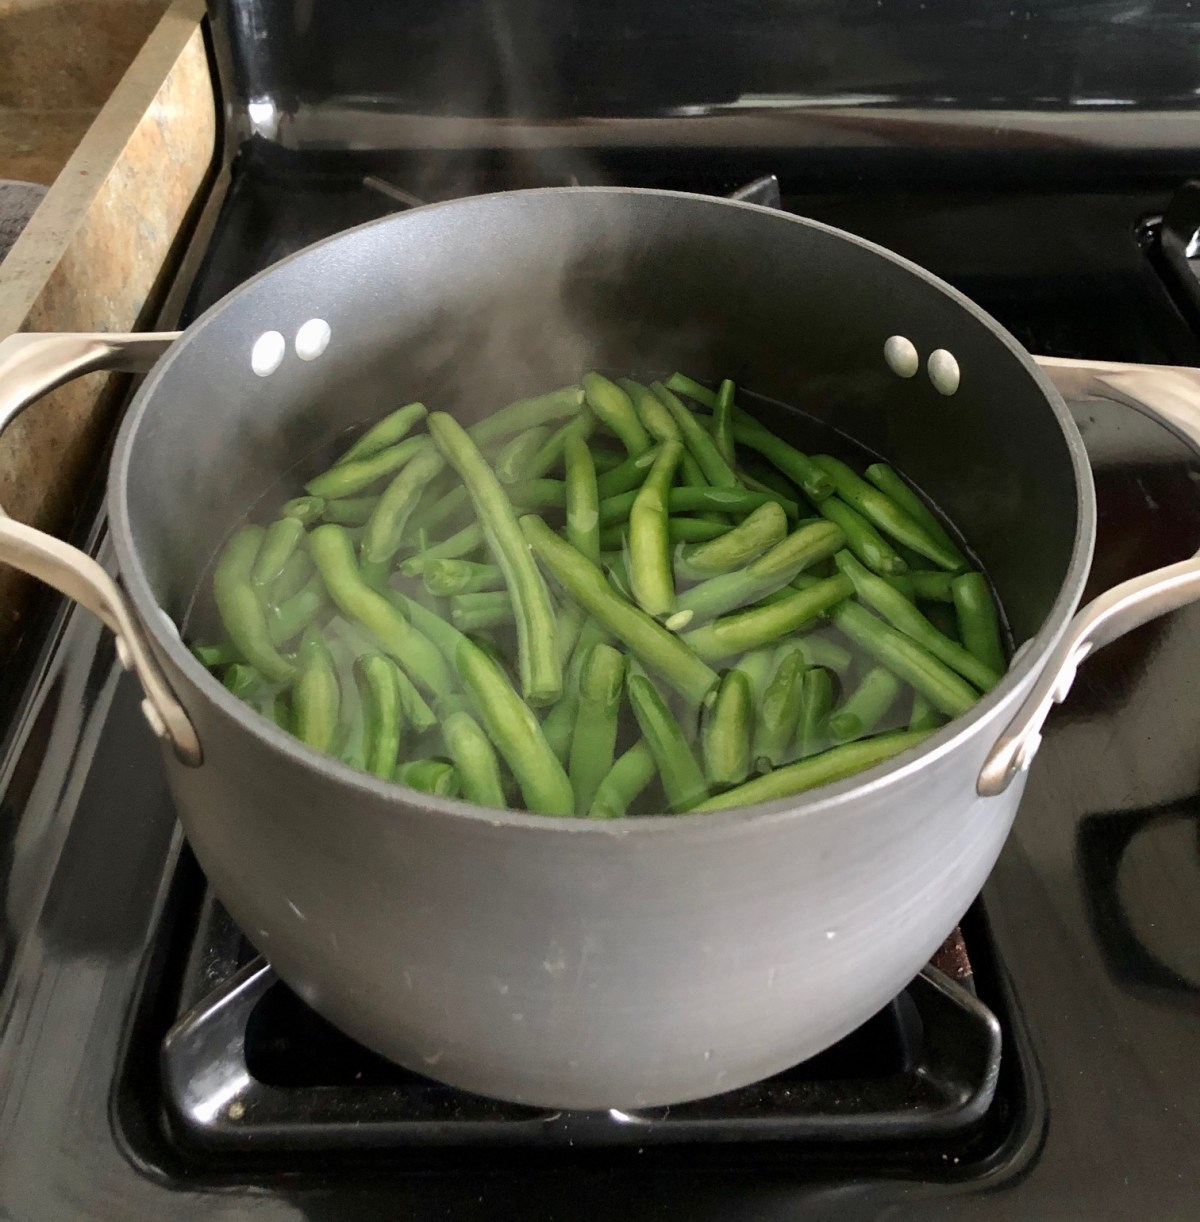 Green beans in a large pot of boiling water. #tennesseeapplerecipes #greenbeans #glazedgreenbeans #holidaysidedish #vegetablesidedish